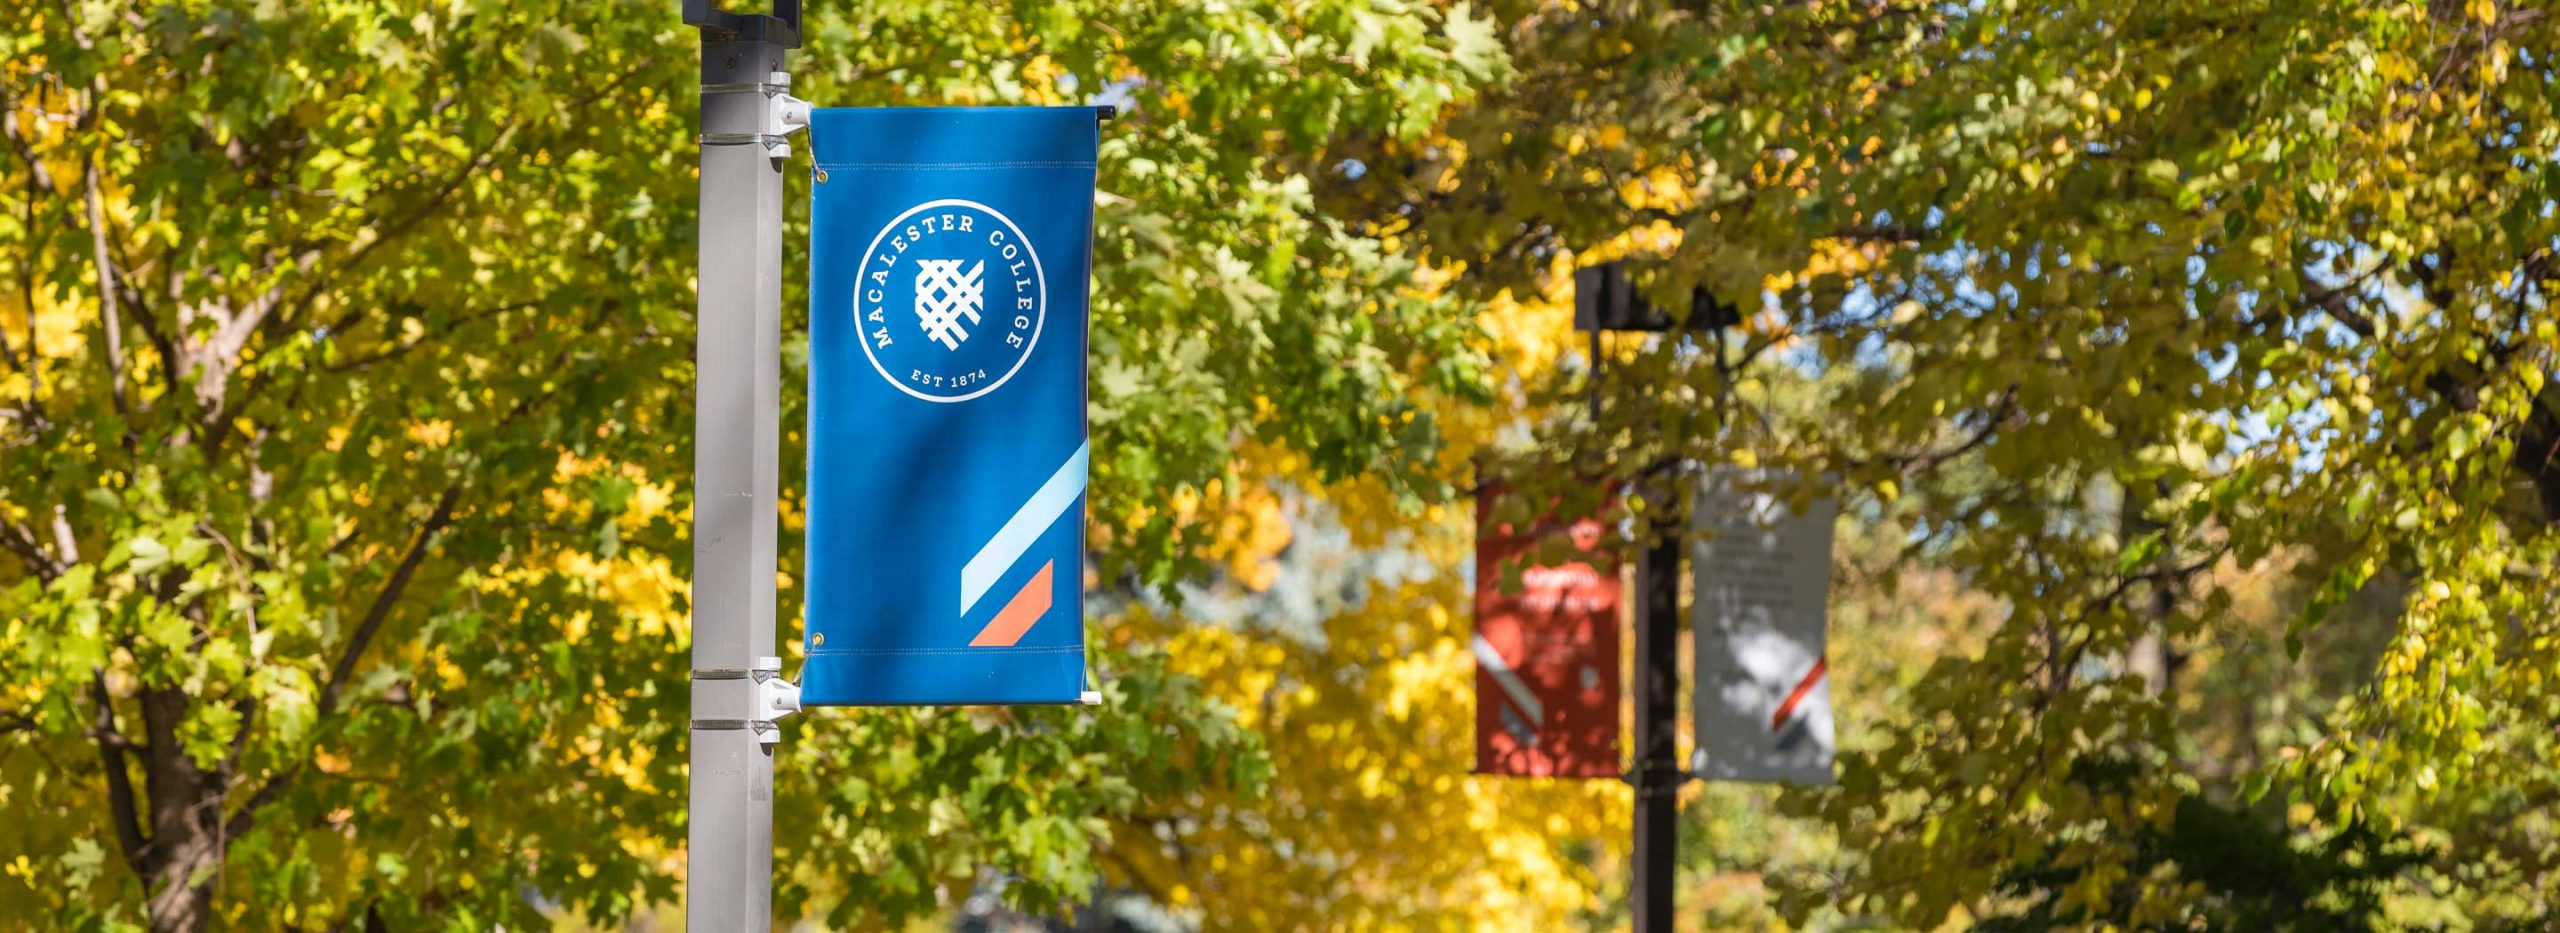 Banners affixed to light posts on the Macalester campus in autumn.